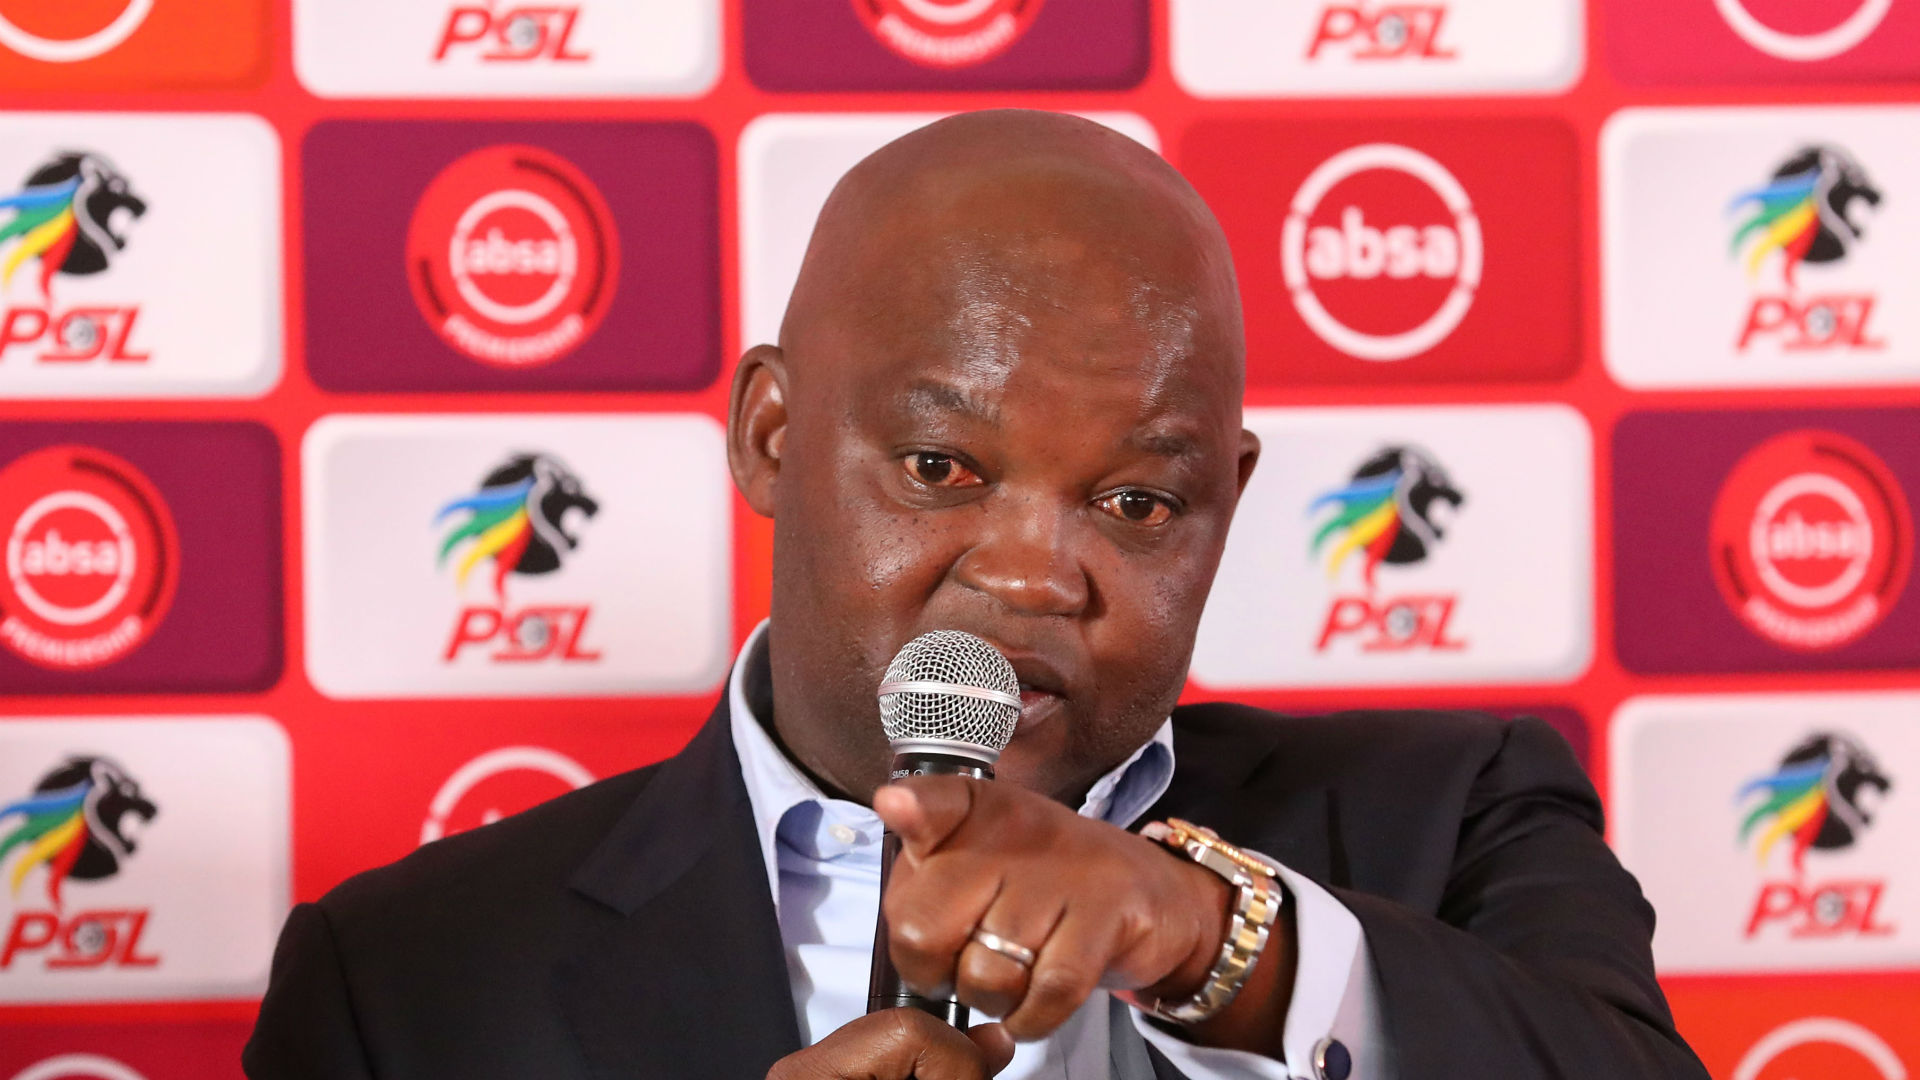 Mamelodi Sundowns coach Mosimane lets the cat out of the bag